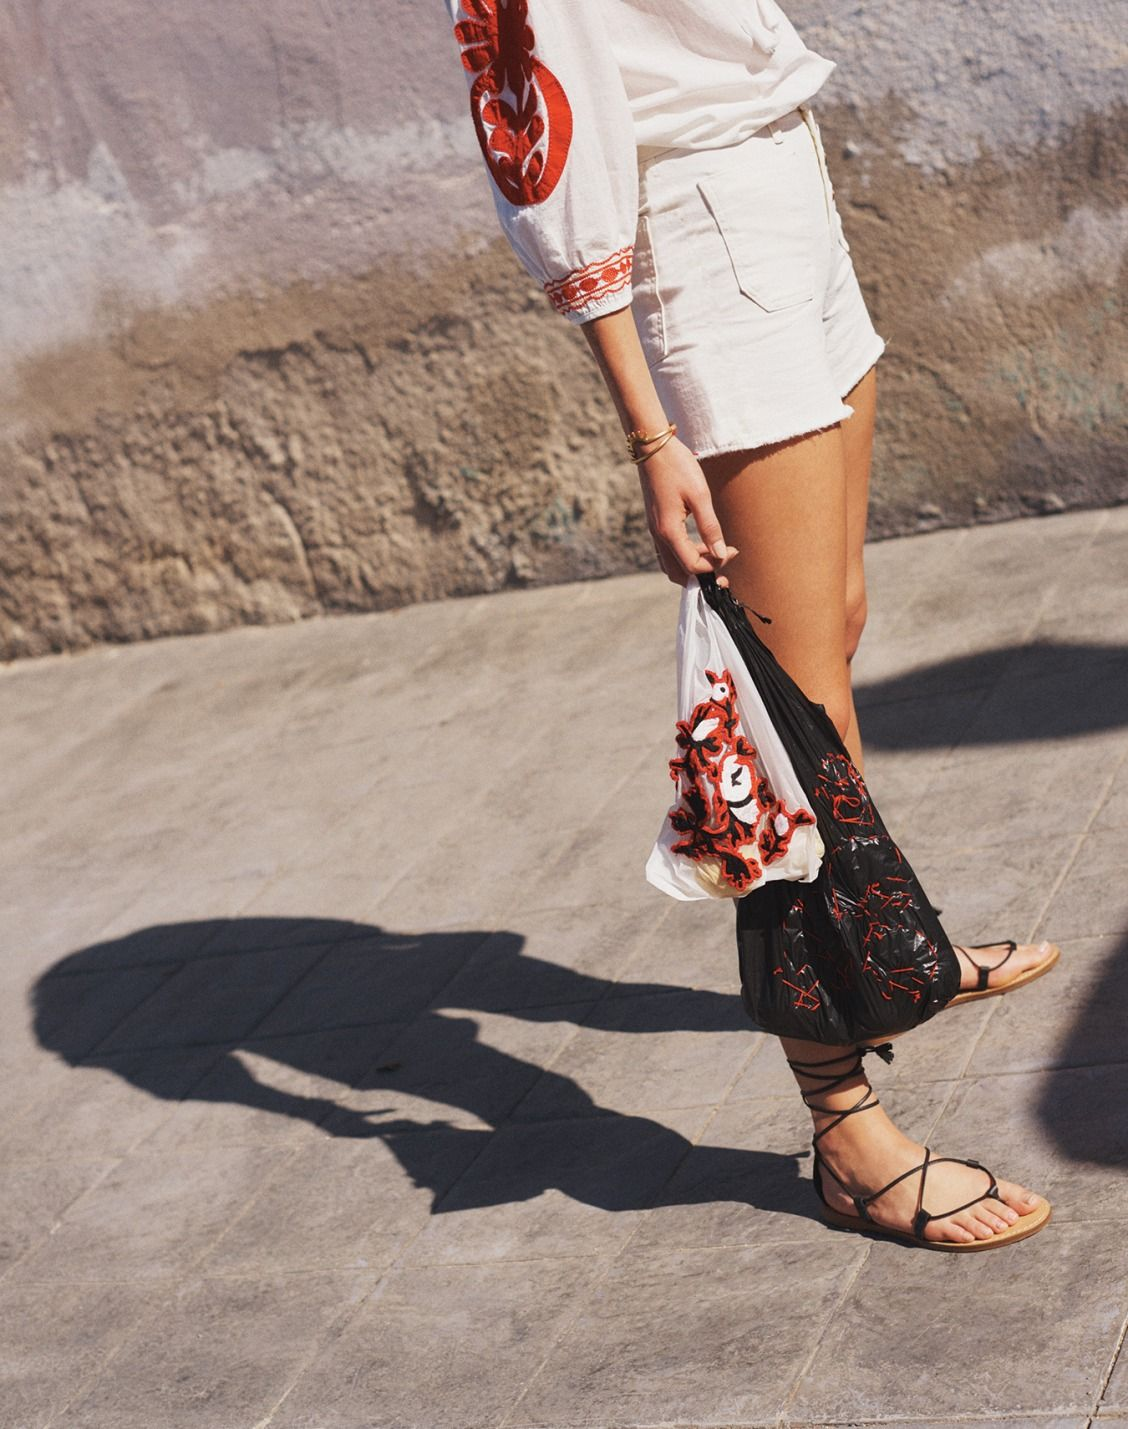 1a2b4111d8 madewell high-rise denim boyshorts worn with the boardwalk lace-up sandal +  embroidered blanca top.